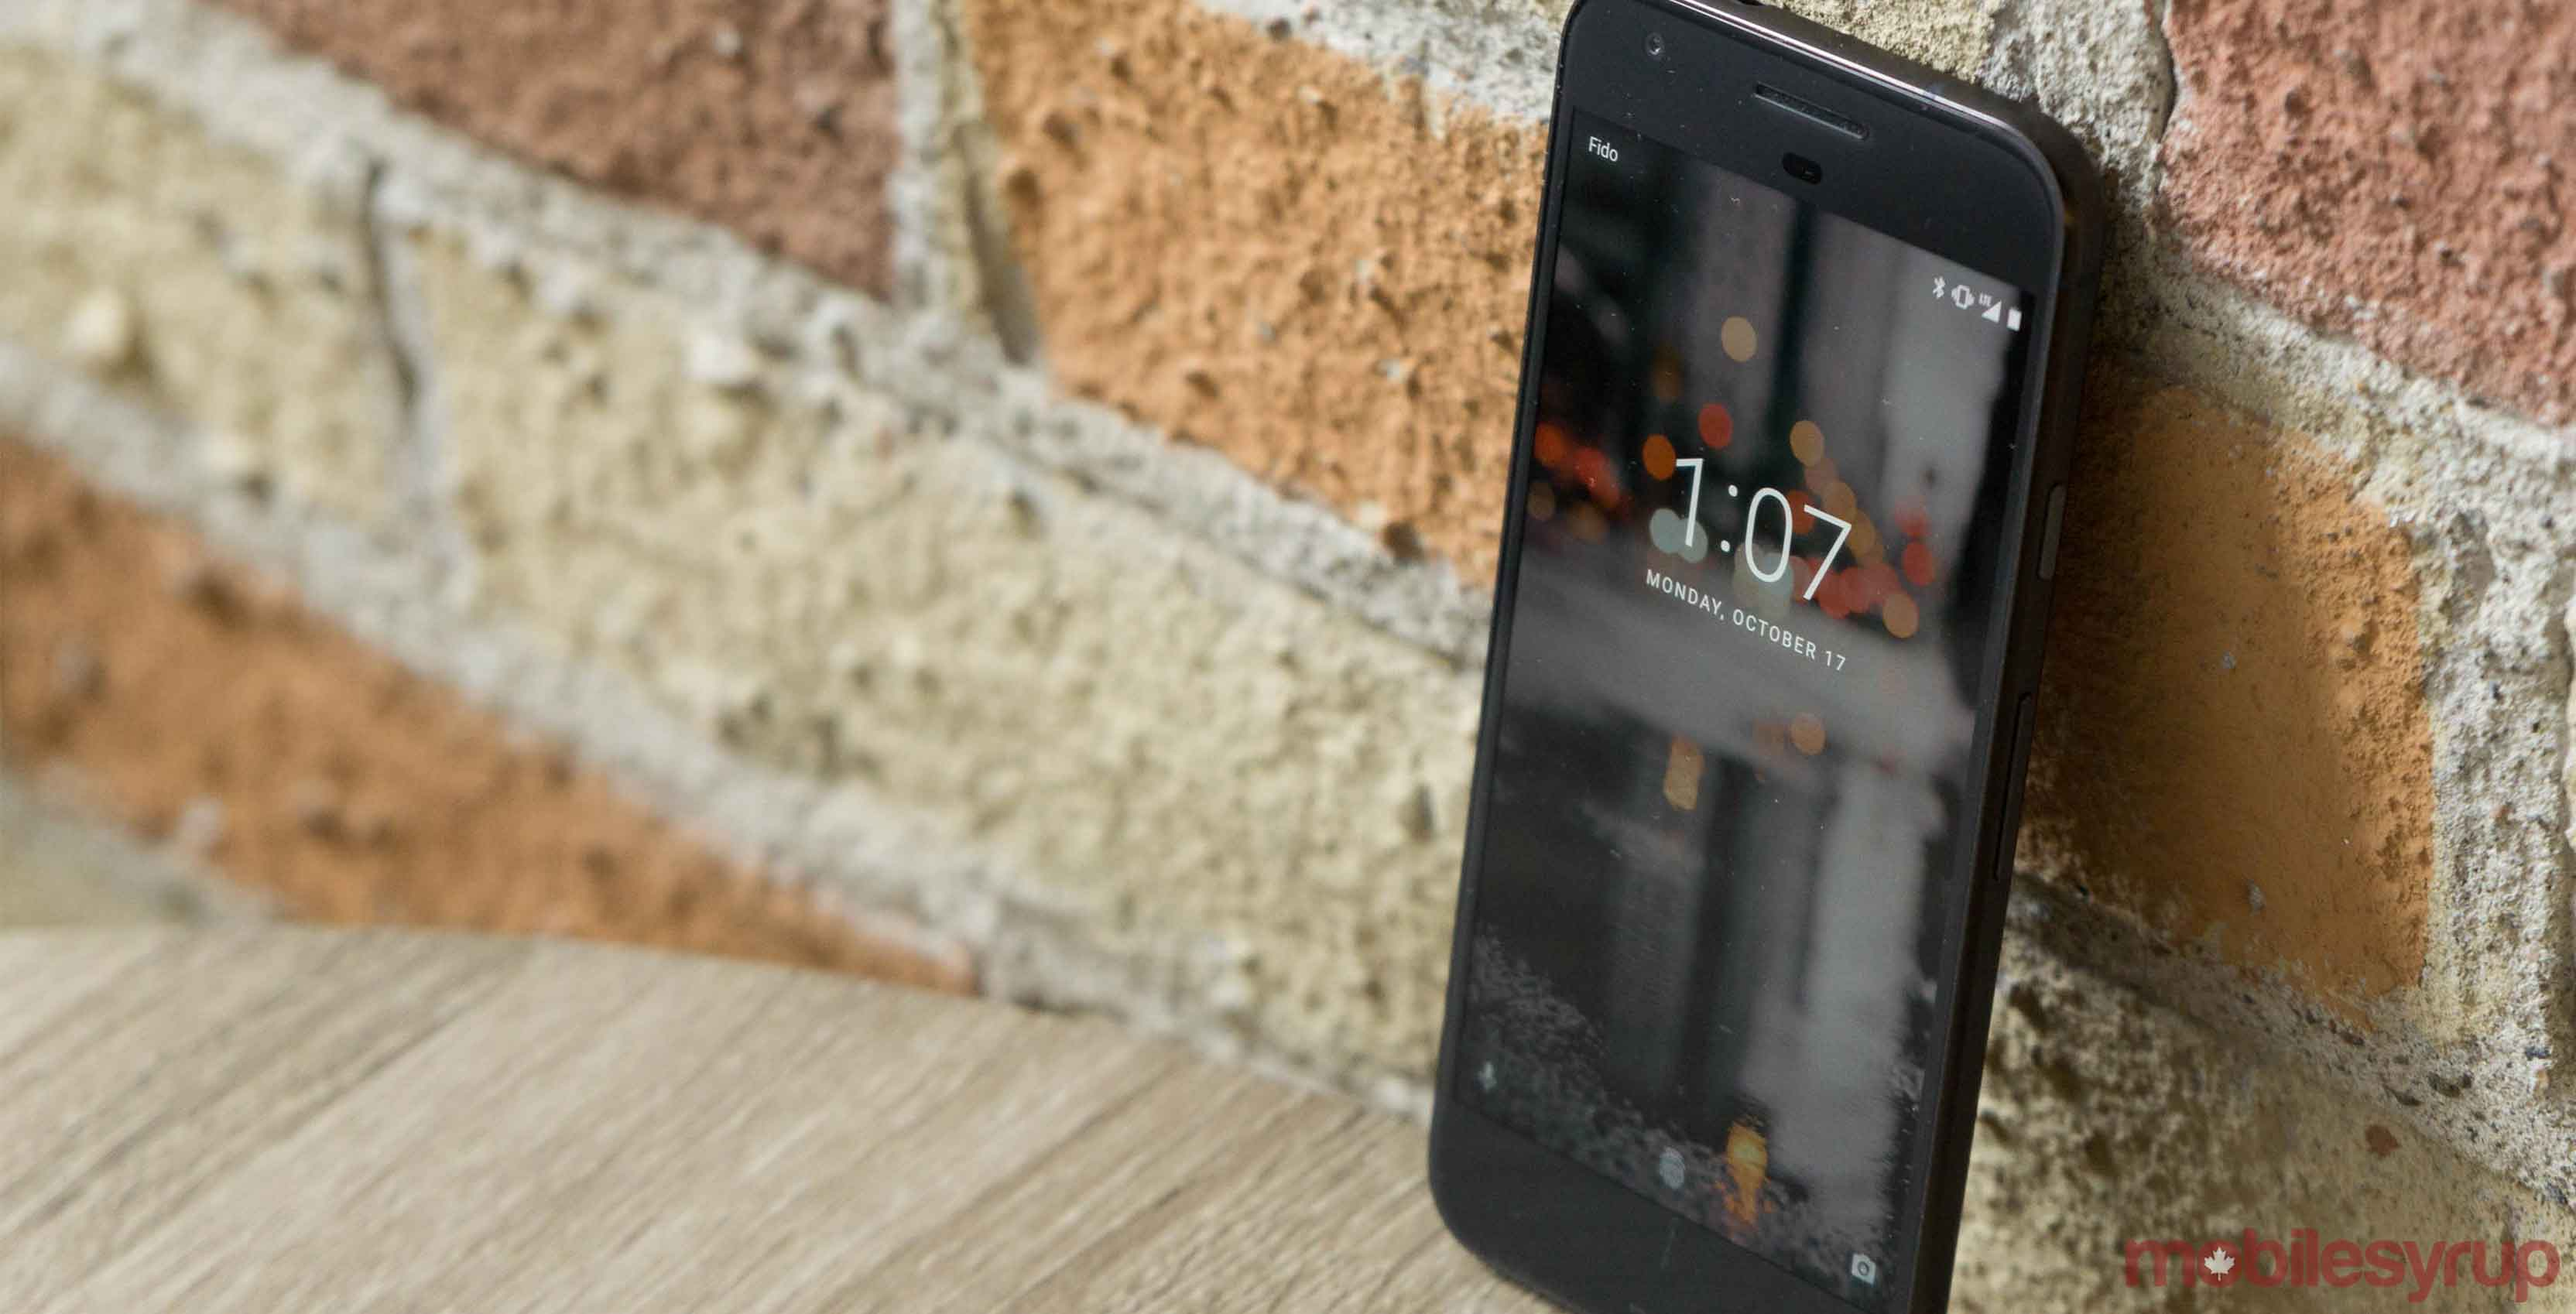 Google's Pixel smartphone leaning against a brick wall